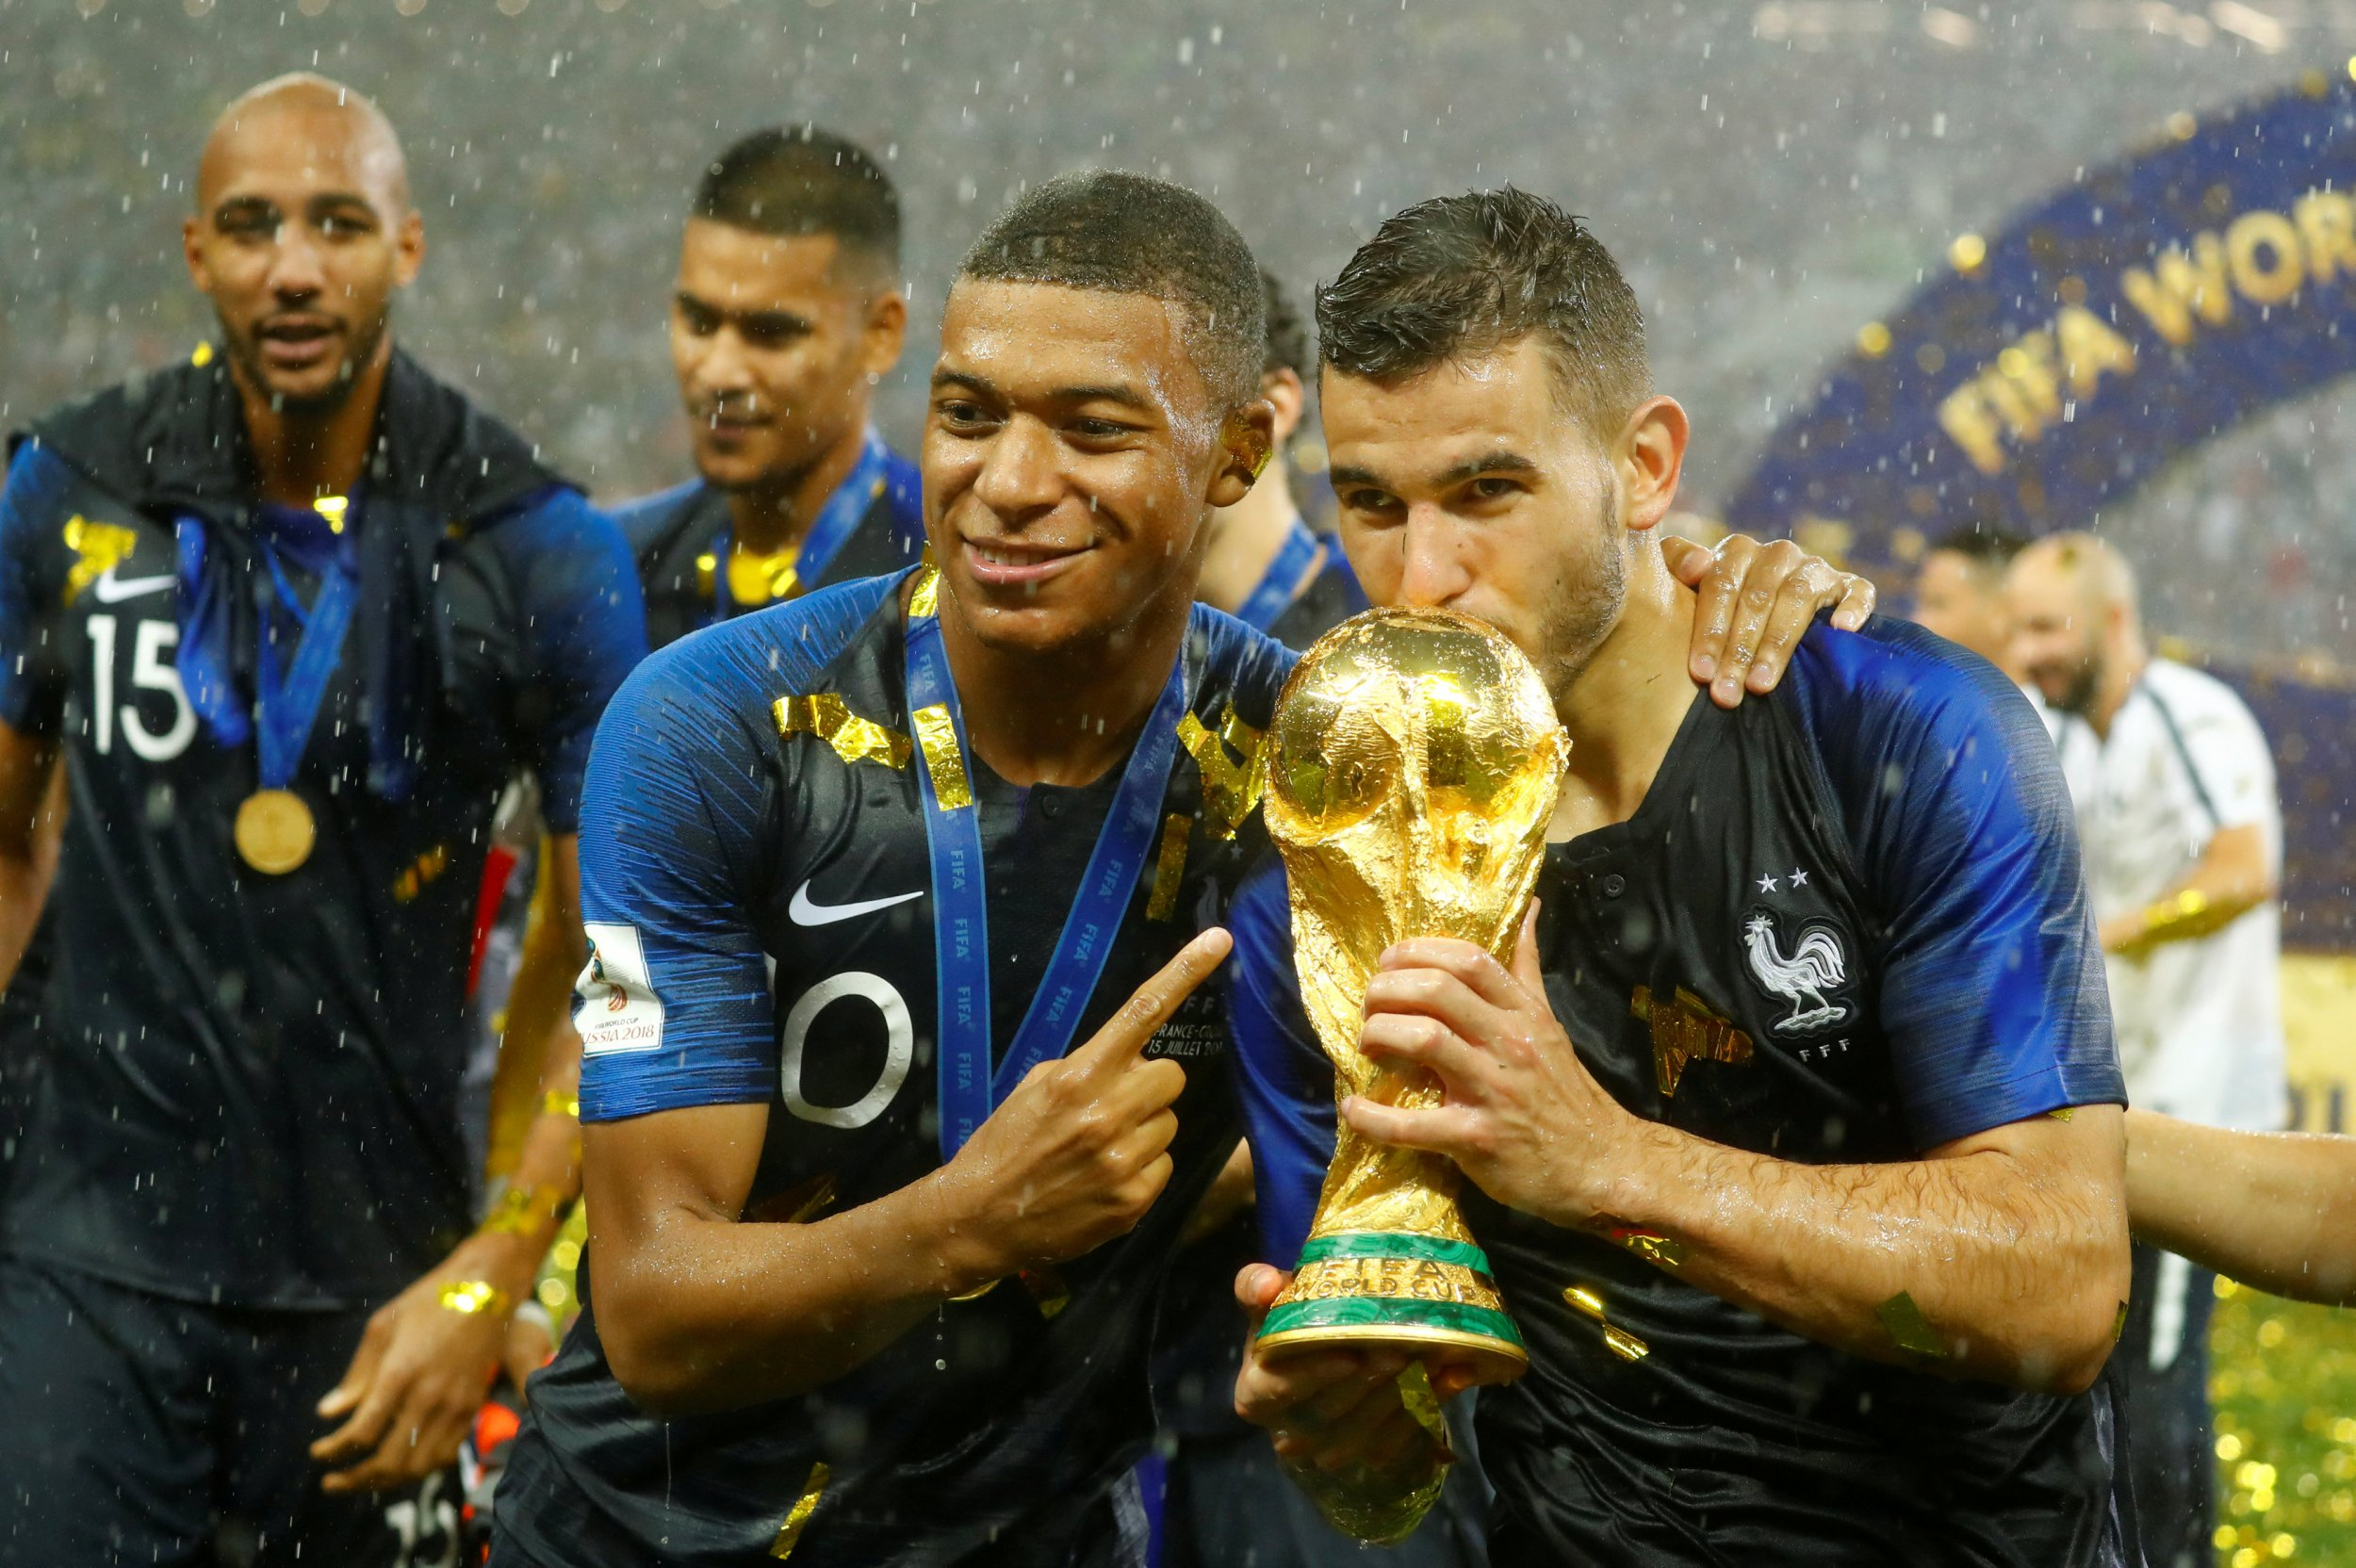 2018-07-15T180235Z_1105683554_RC135F3BD900_RTRMADP_3_SOCCER-WORLDCUP-FINAL